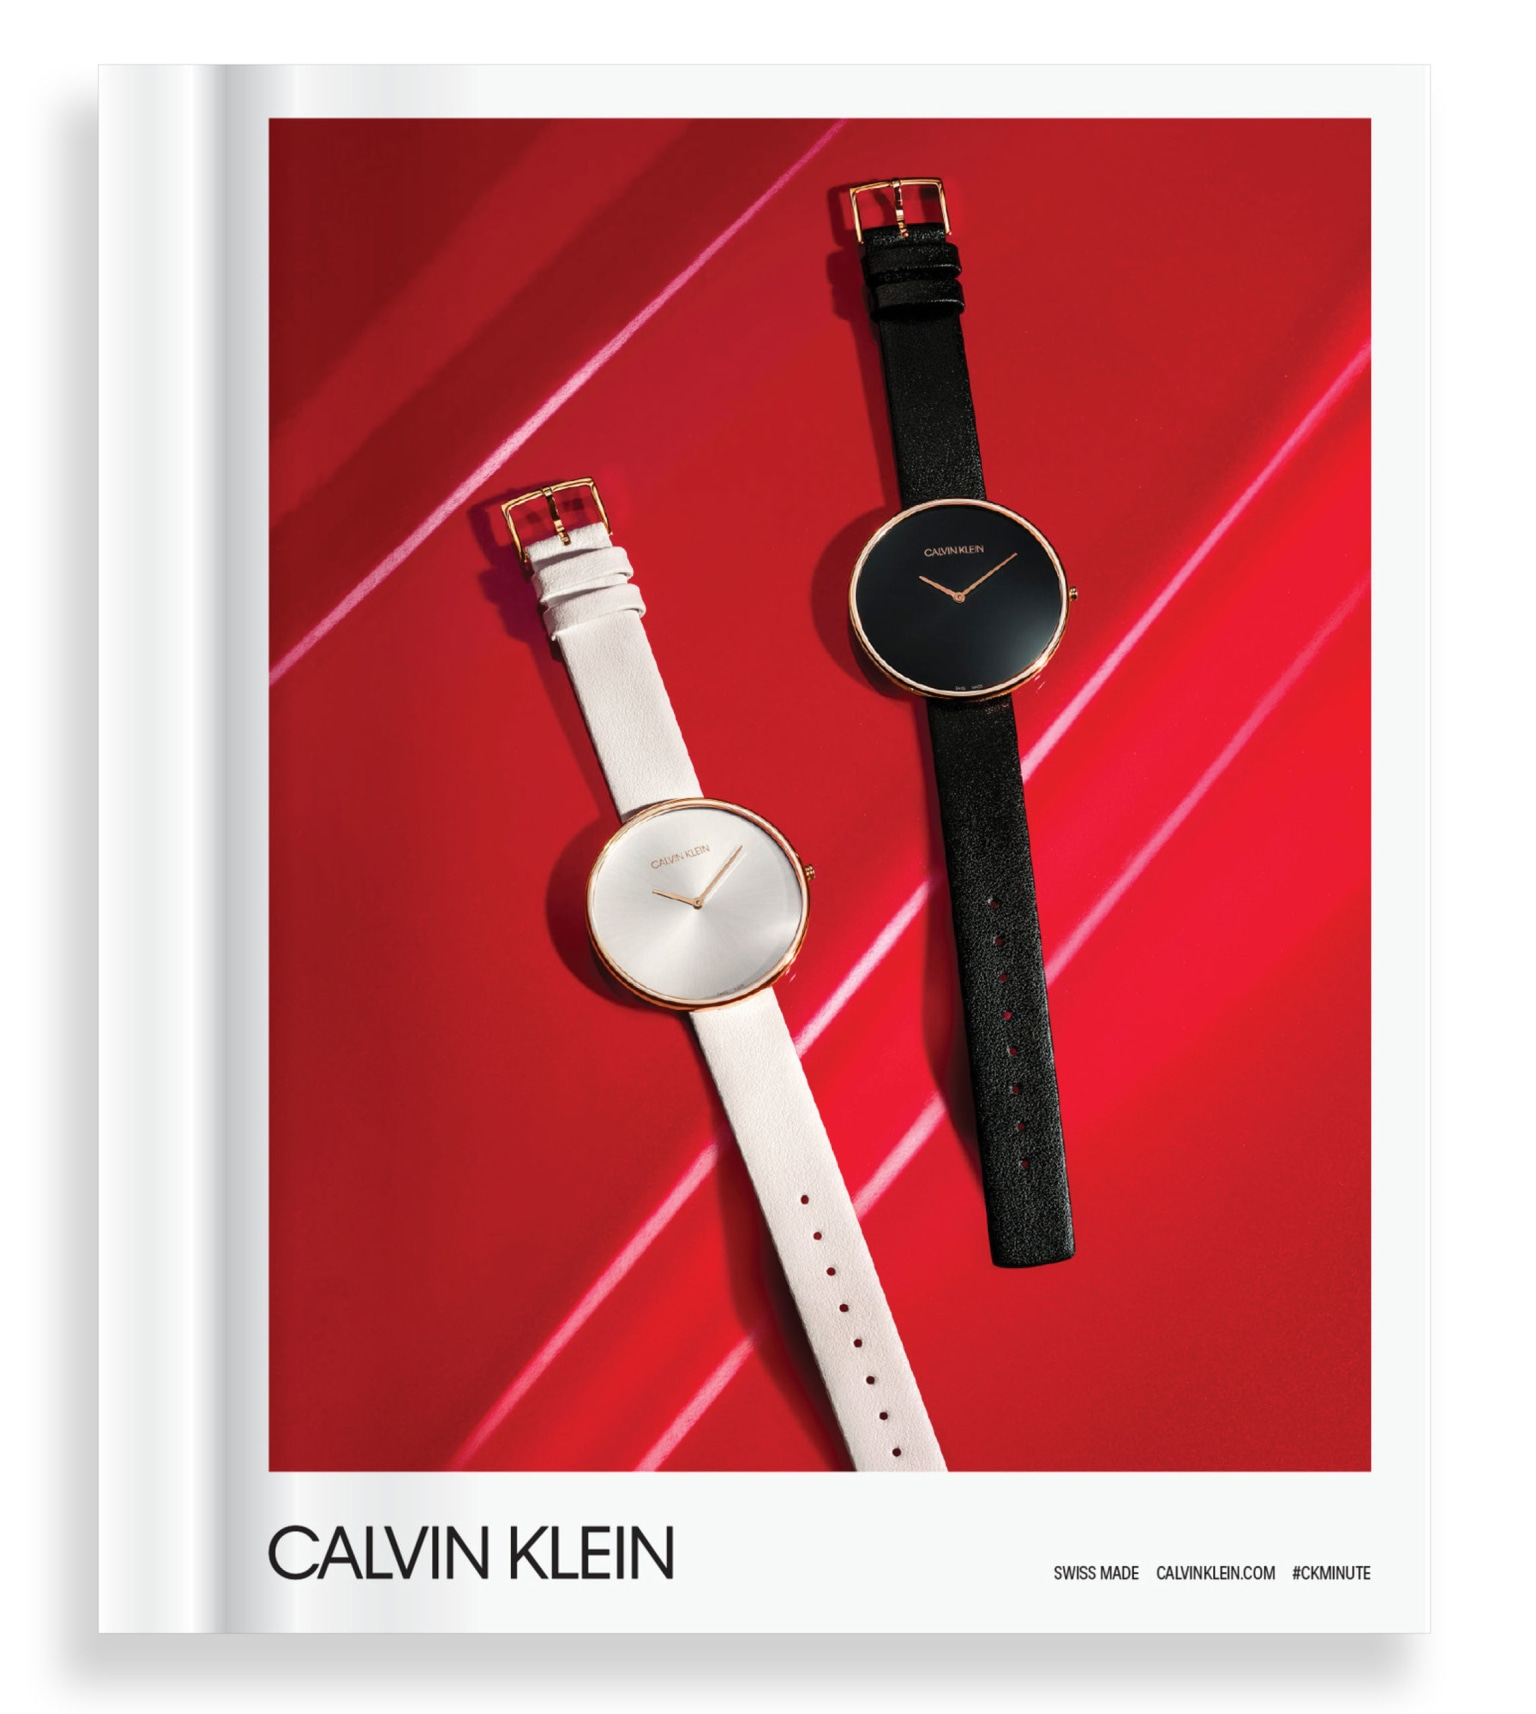 Calvin Klein Watches & Jewelry Campaign